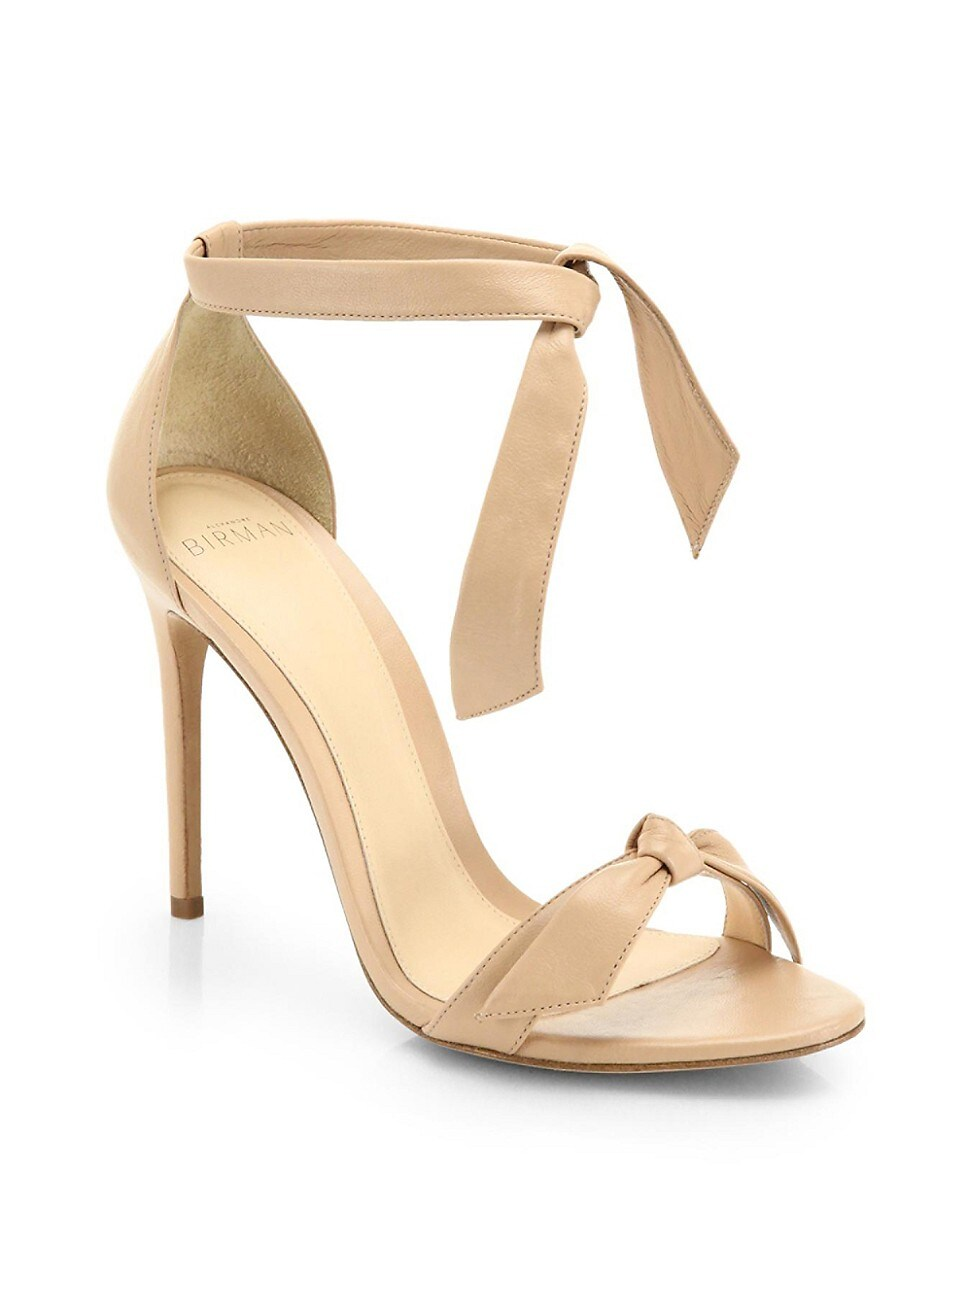 Alexandre Birman WOMEN'S CLARITA BOW LEATHER SANDALS